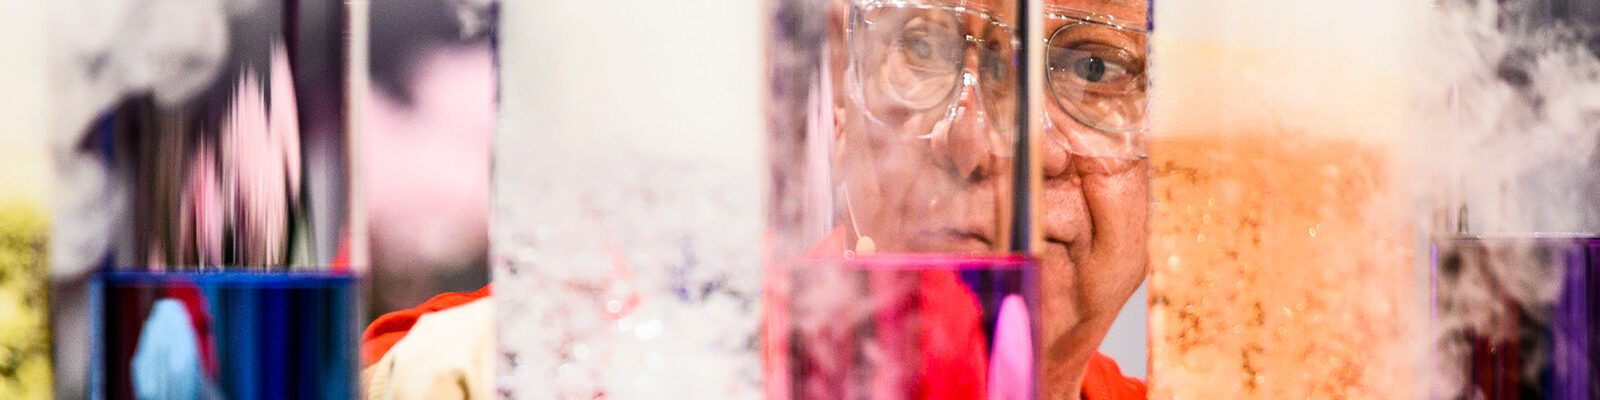 Man looks through colored test tubes